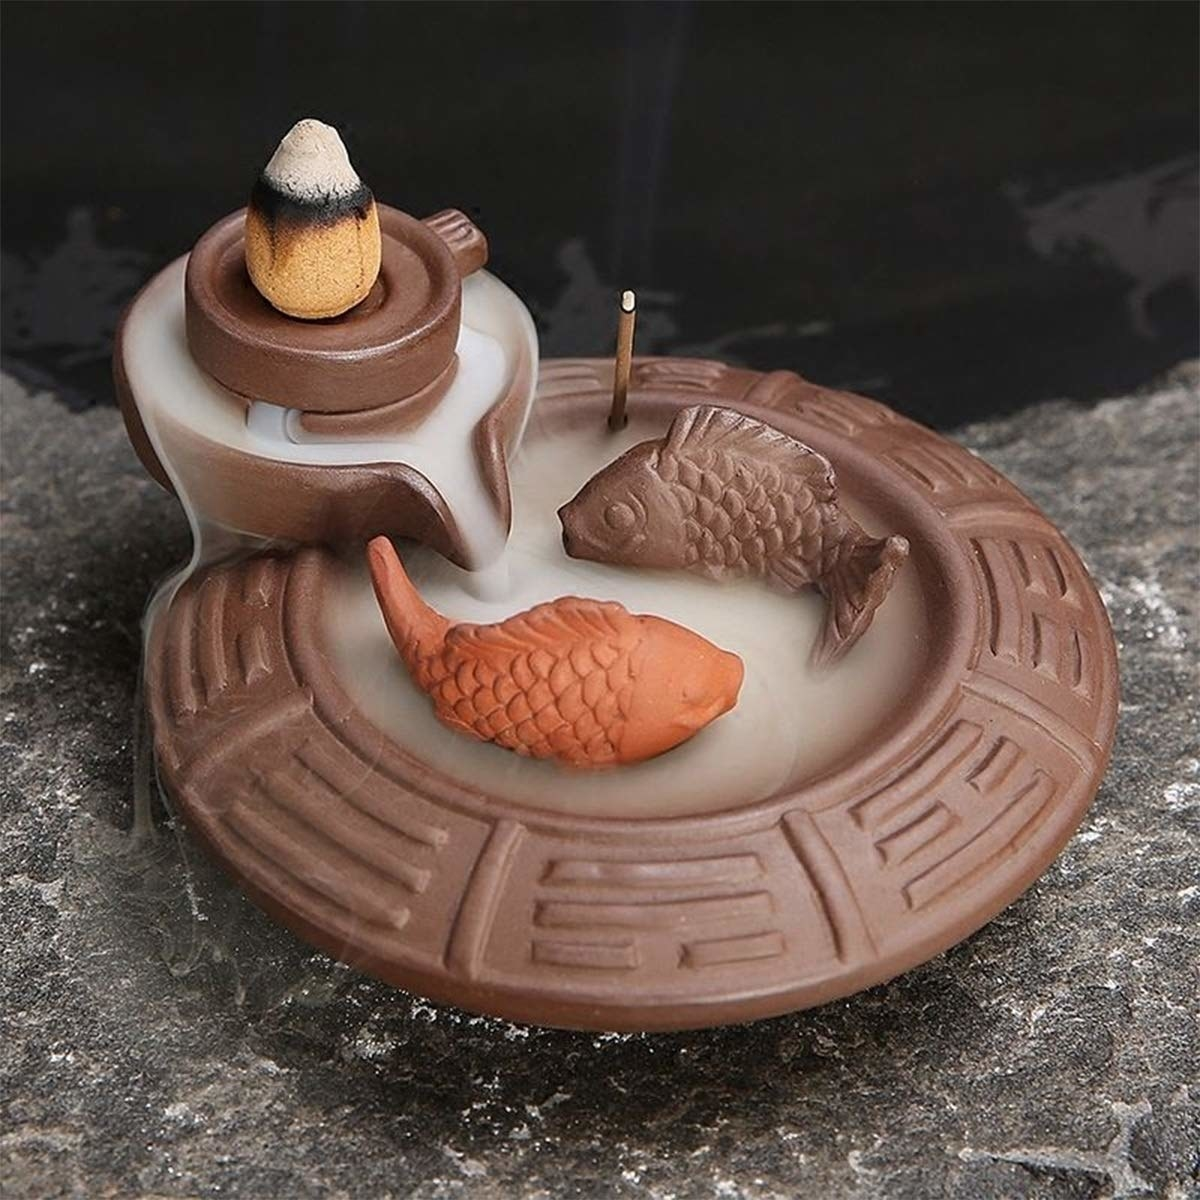 An incense burner with two fishes swimming inside, where smoke deposits to form a sort of pond.